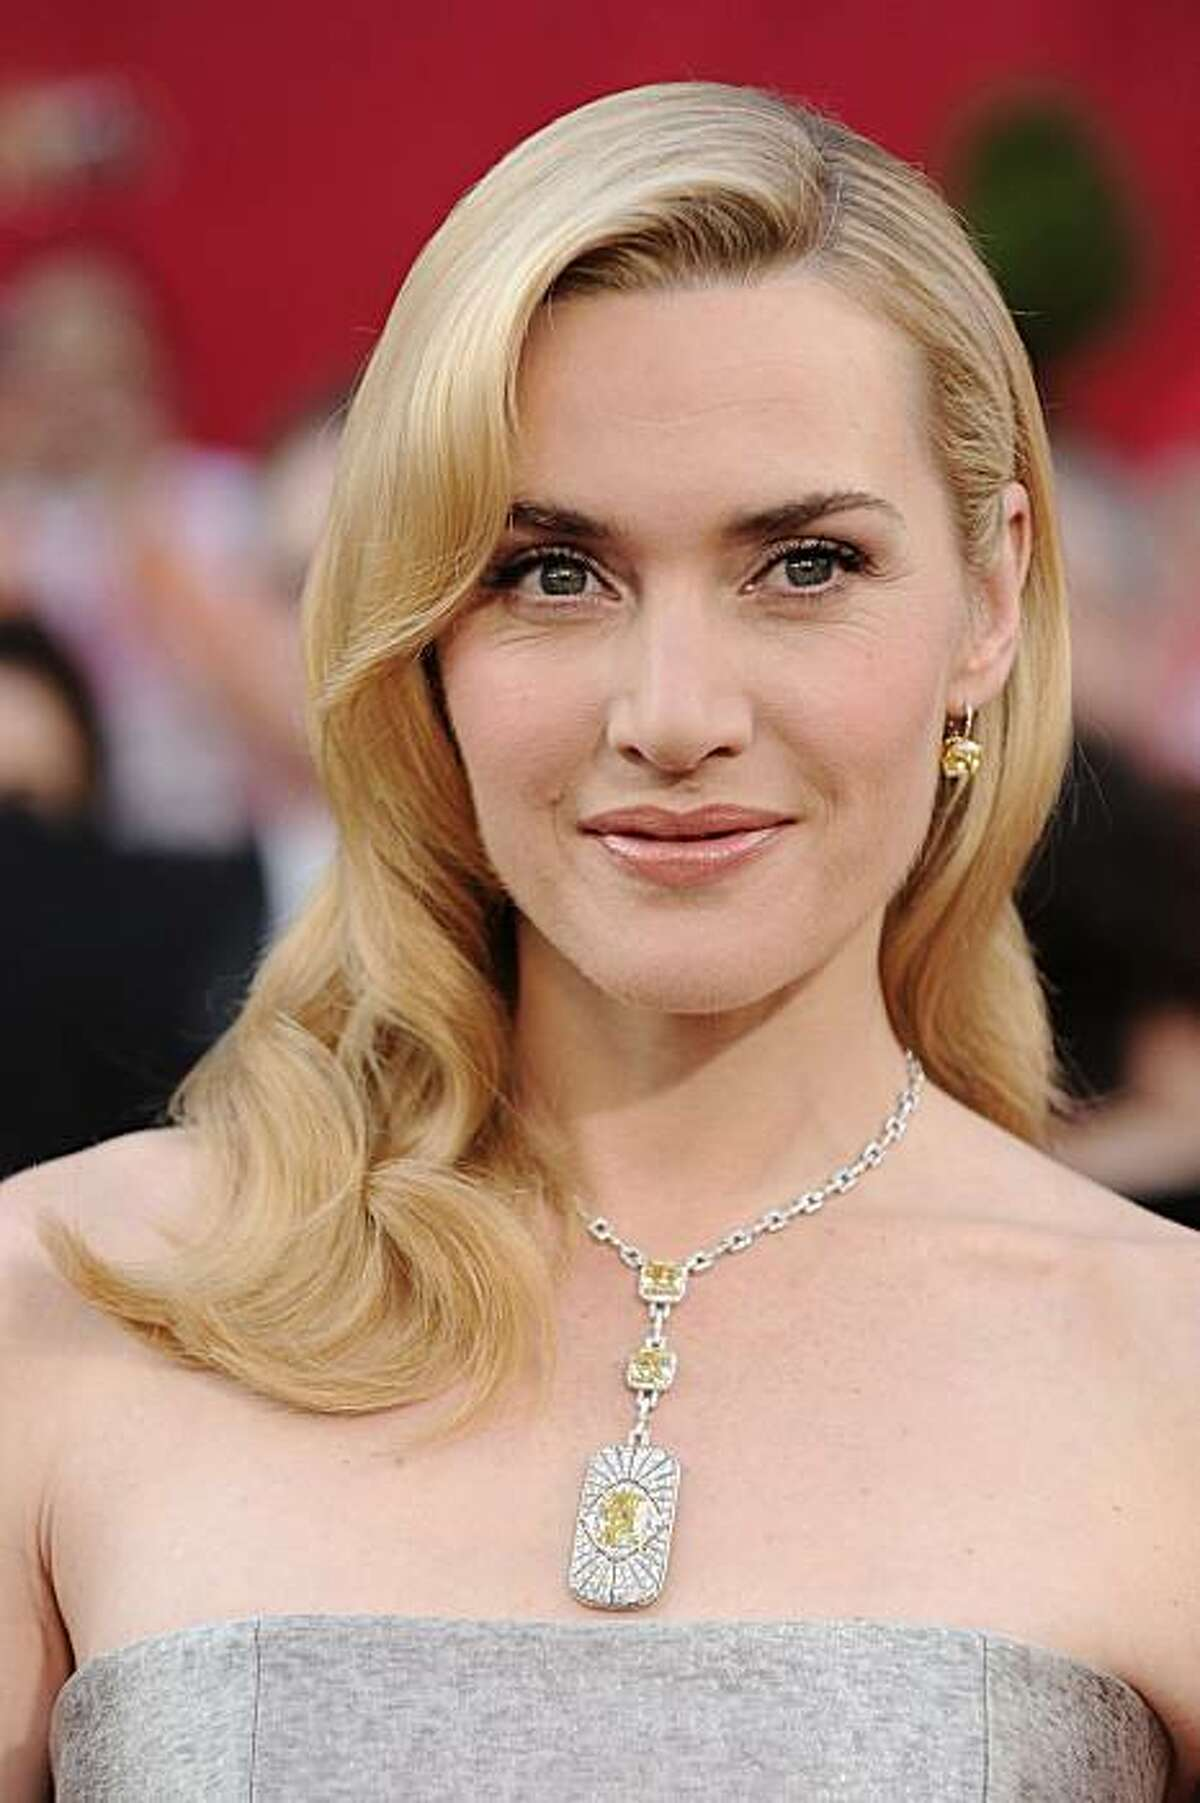 Kate Winslet, March 7, 2010, age 34.